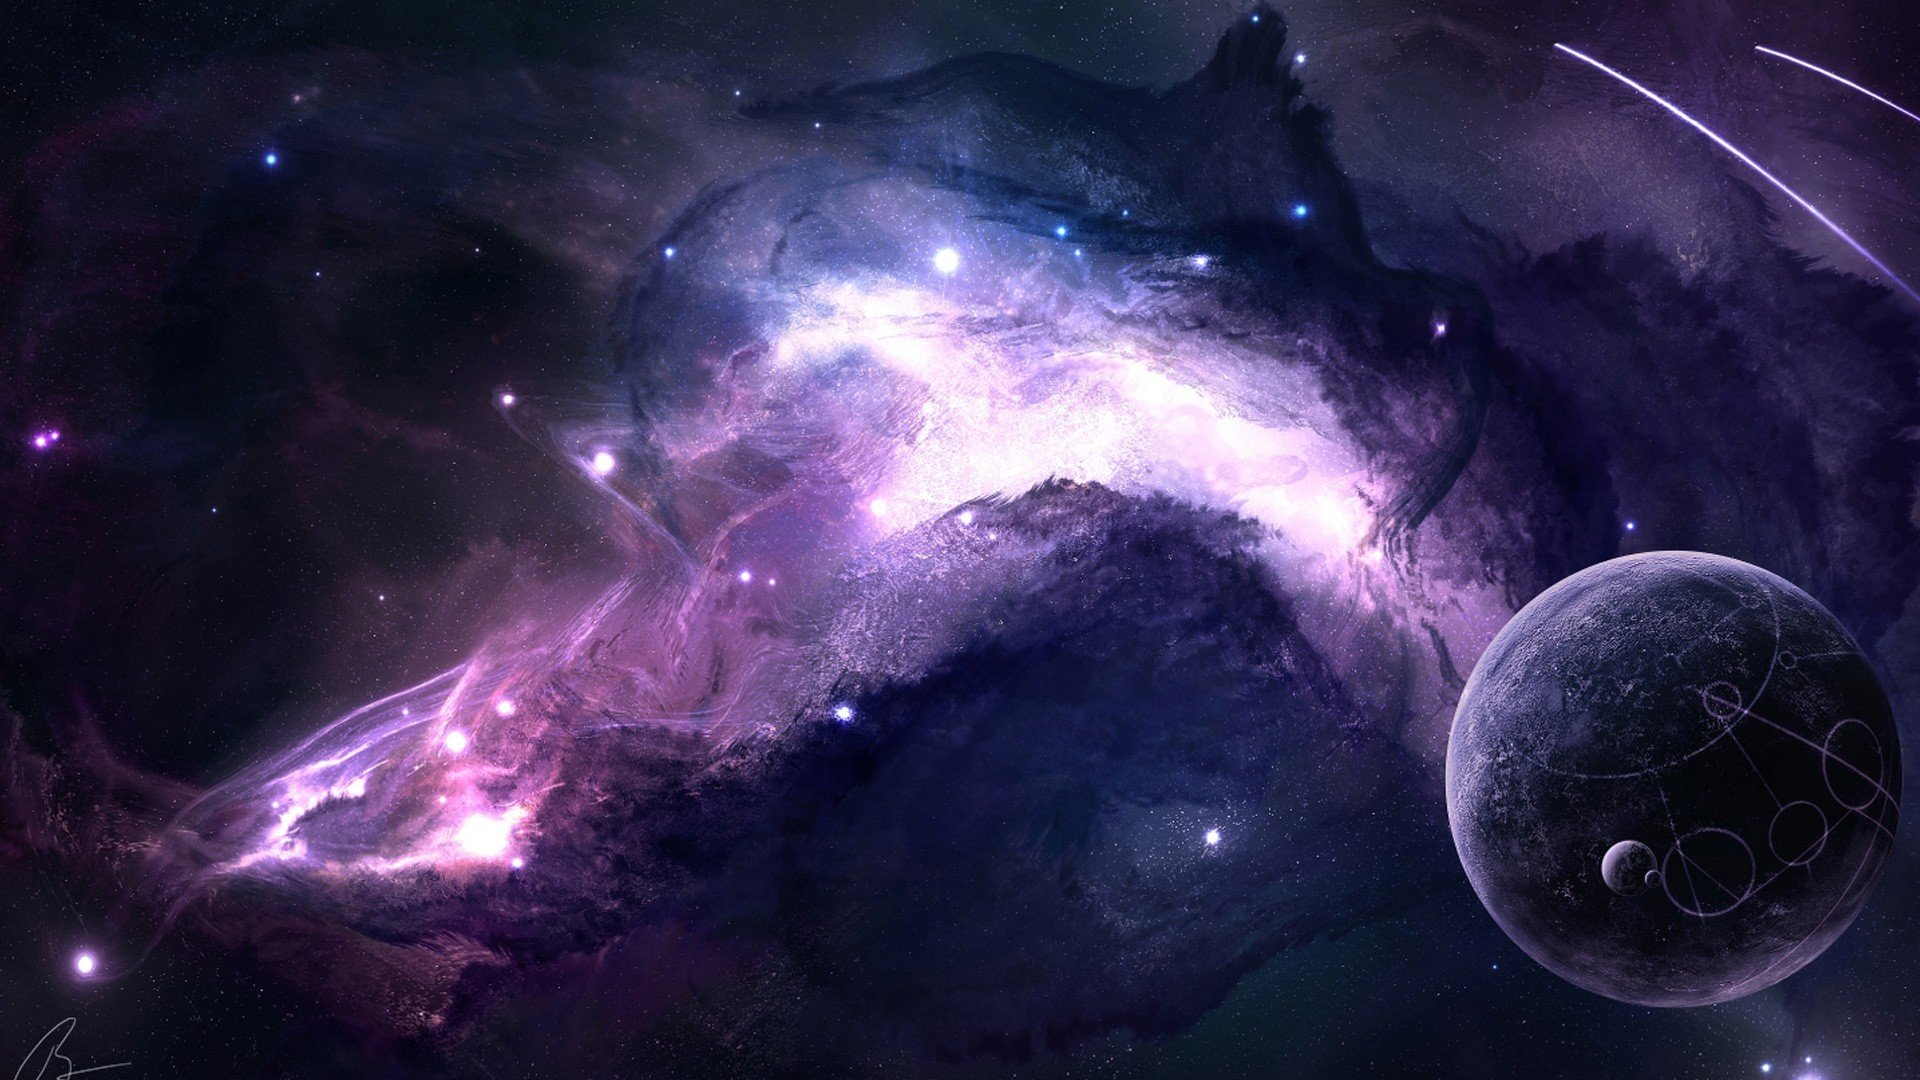 Joeyjazz Space Planet Moon Galaxy Purple Space Art